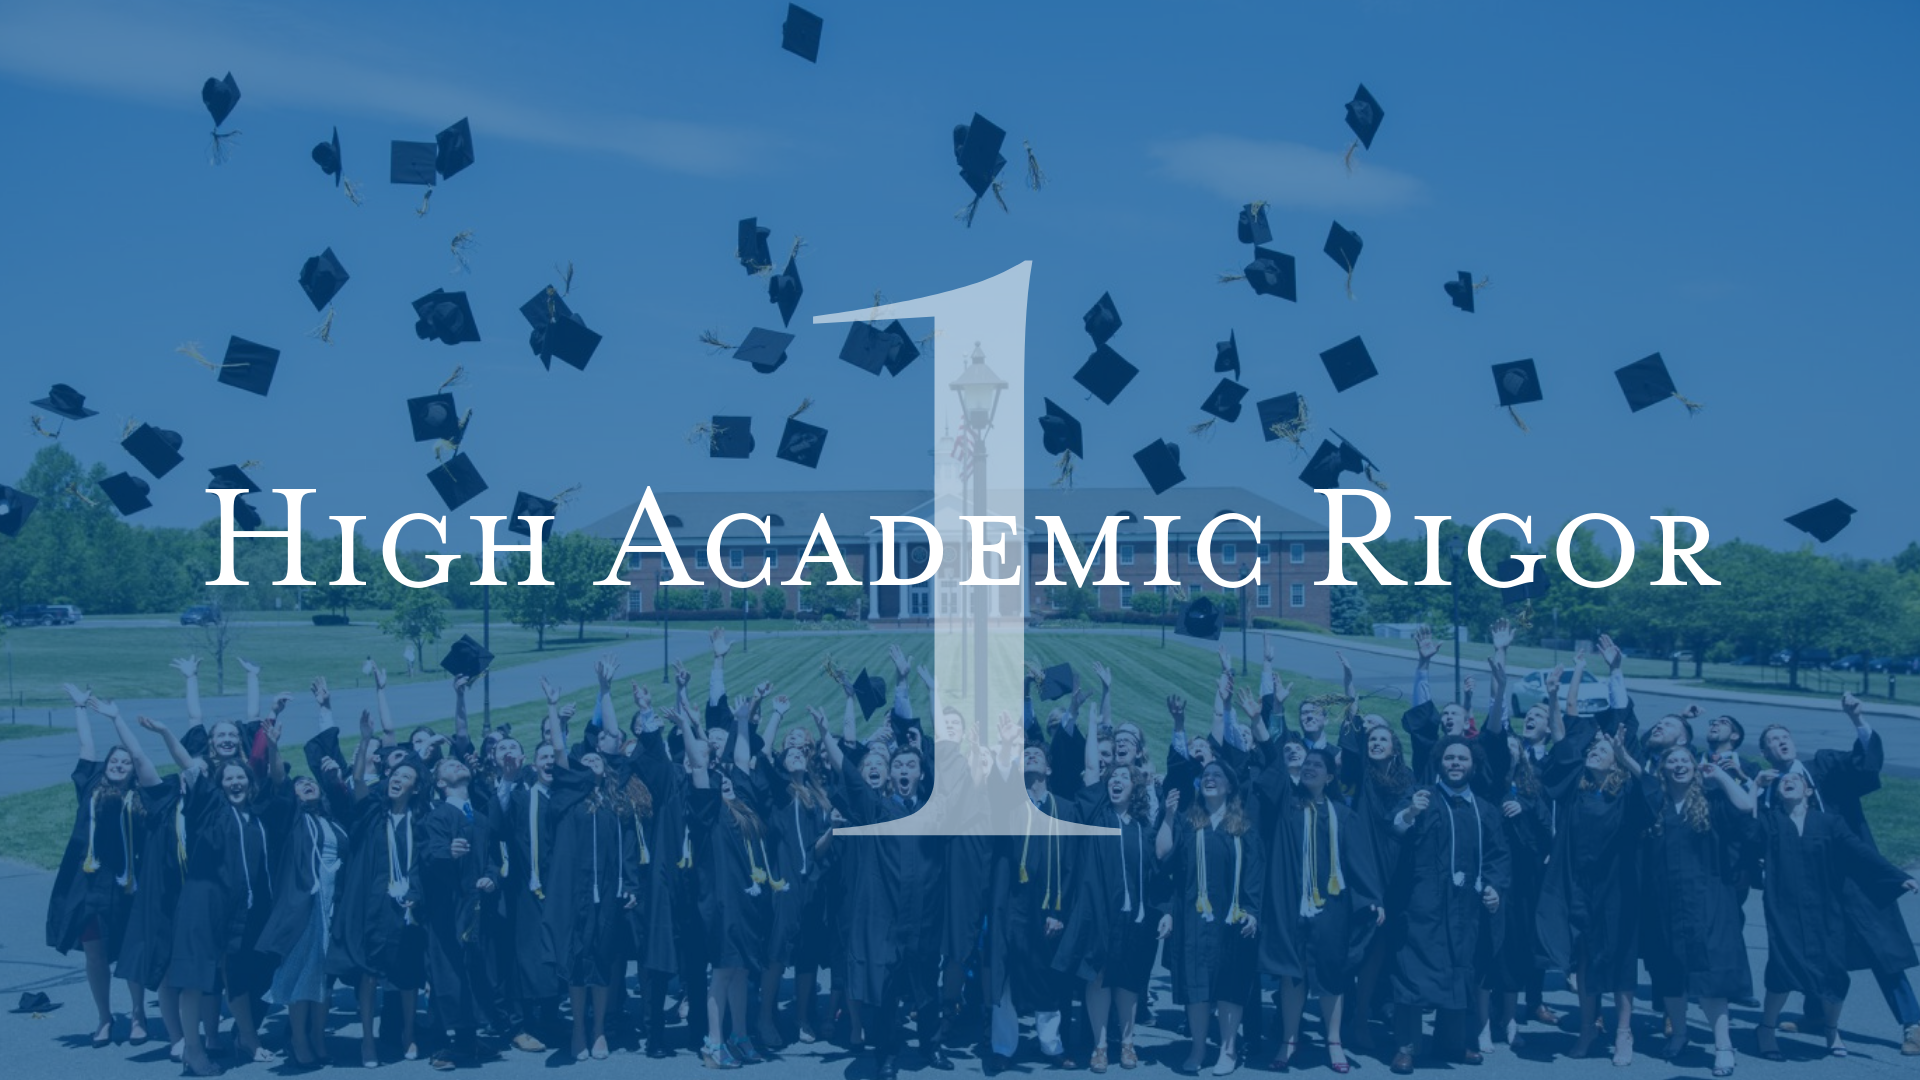 High Academic Rigor Patrick Henry College